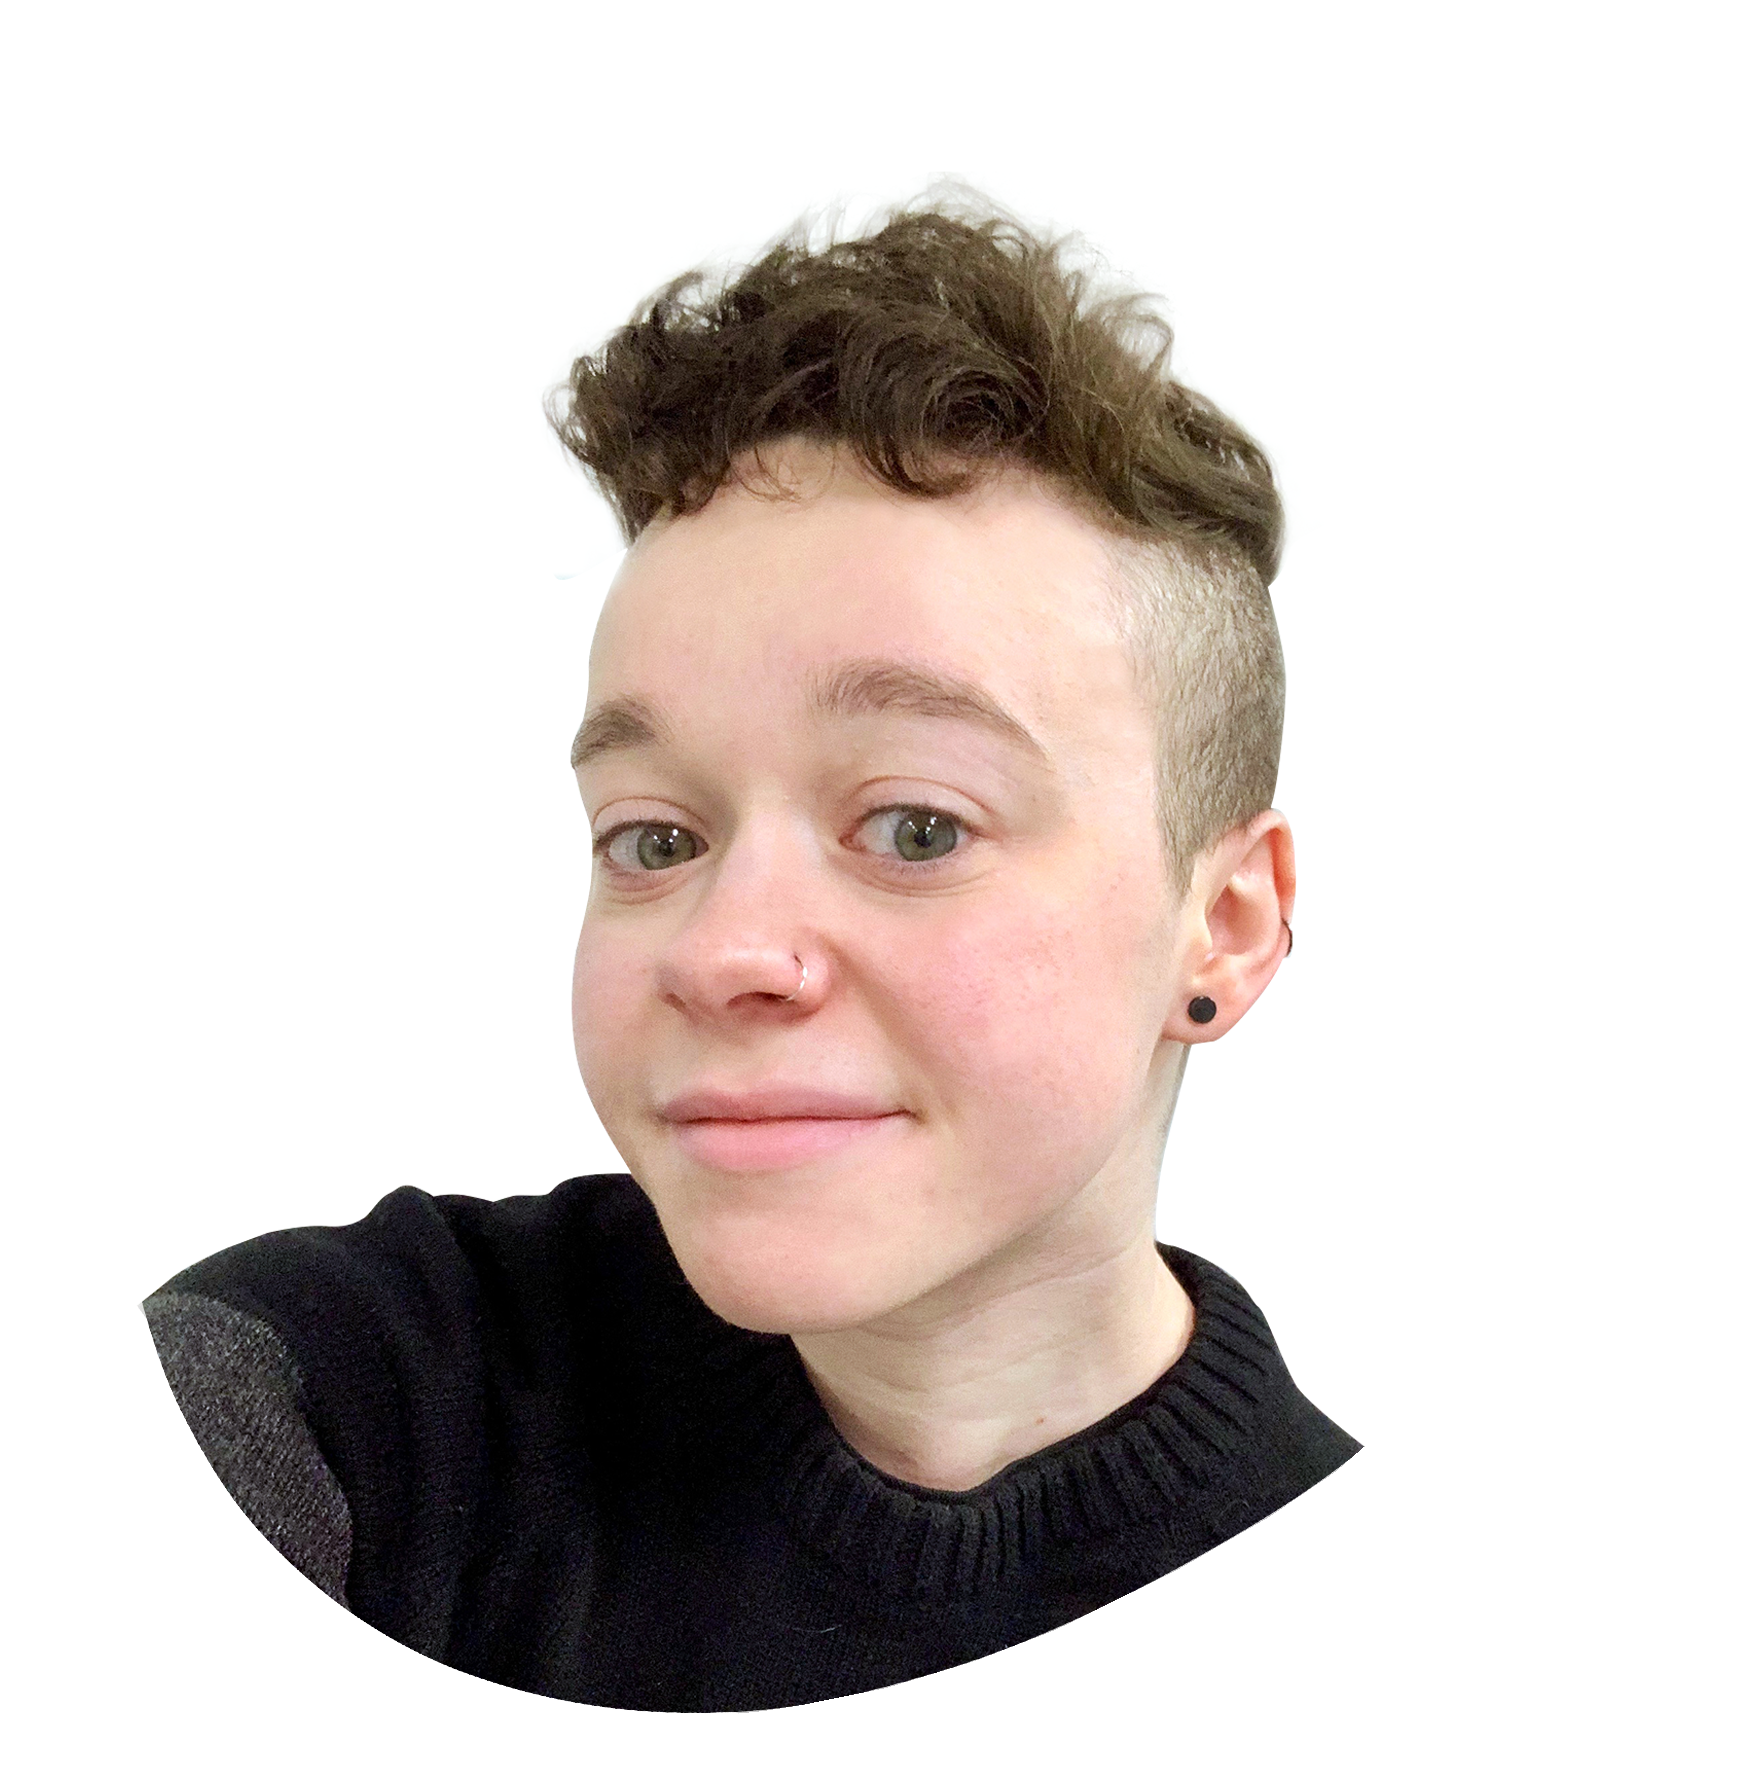 A round, organic splotch shape in off-white, featuring a headshot photograph of Kieran Craft. He has short brown hair that is buzzed on the sides, a silver nose ring, black stud earrings, and is wearing a gray and black sweater.